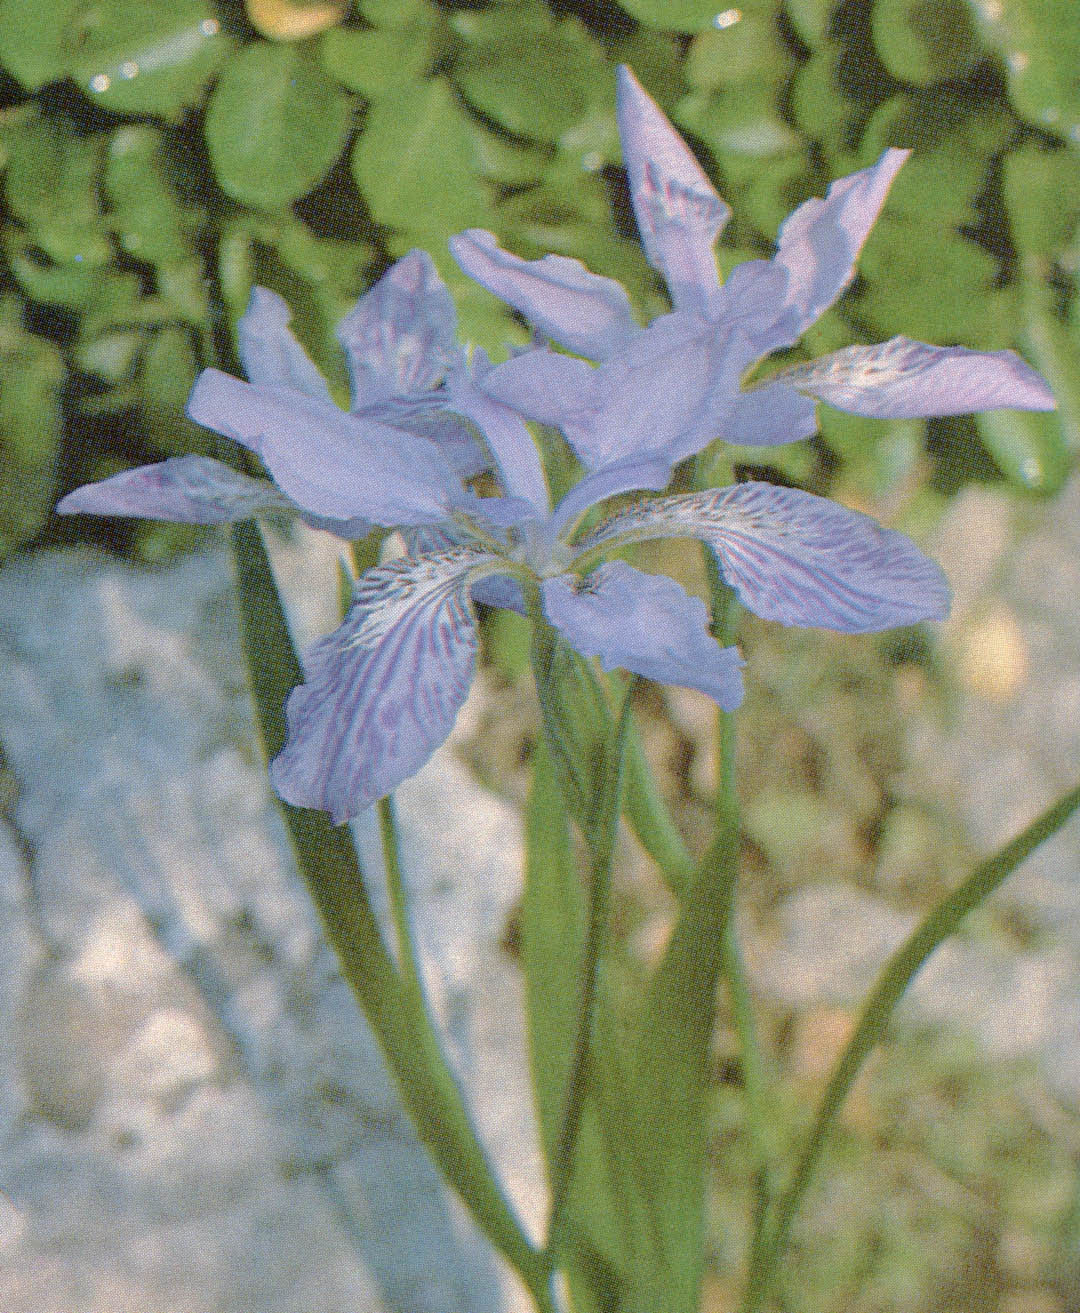 Pacific horticulture society beardless irises the crested iris tectorum izmirmasajfo